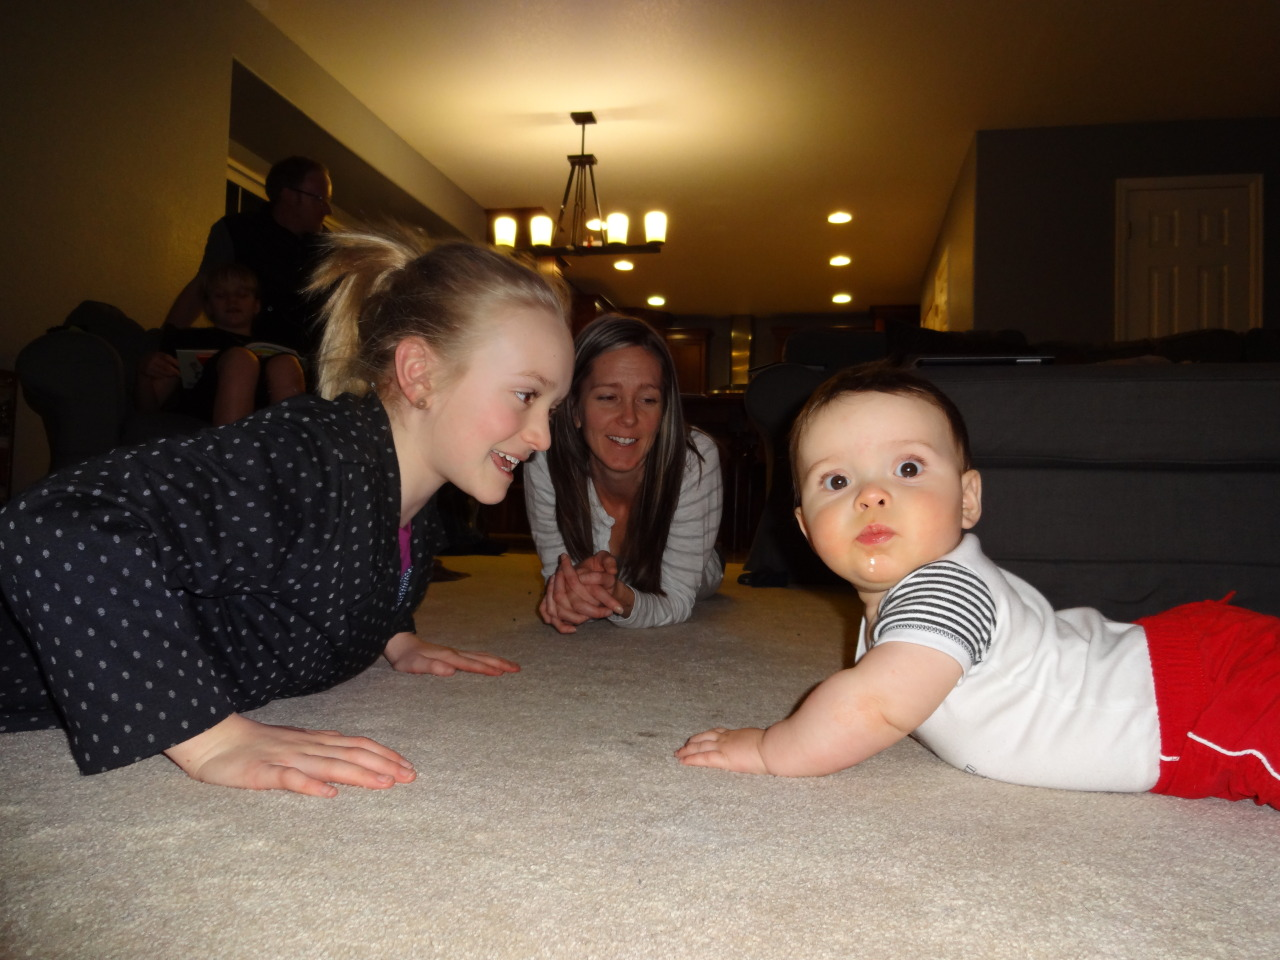 The trying to teach him how to crawl phase, assisted by his cousin. He's not interested in forward motion just yet, but appears to have the scoot backwards down to a tee.